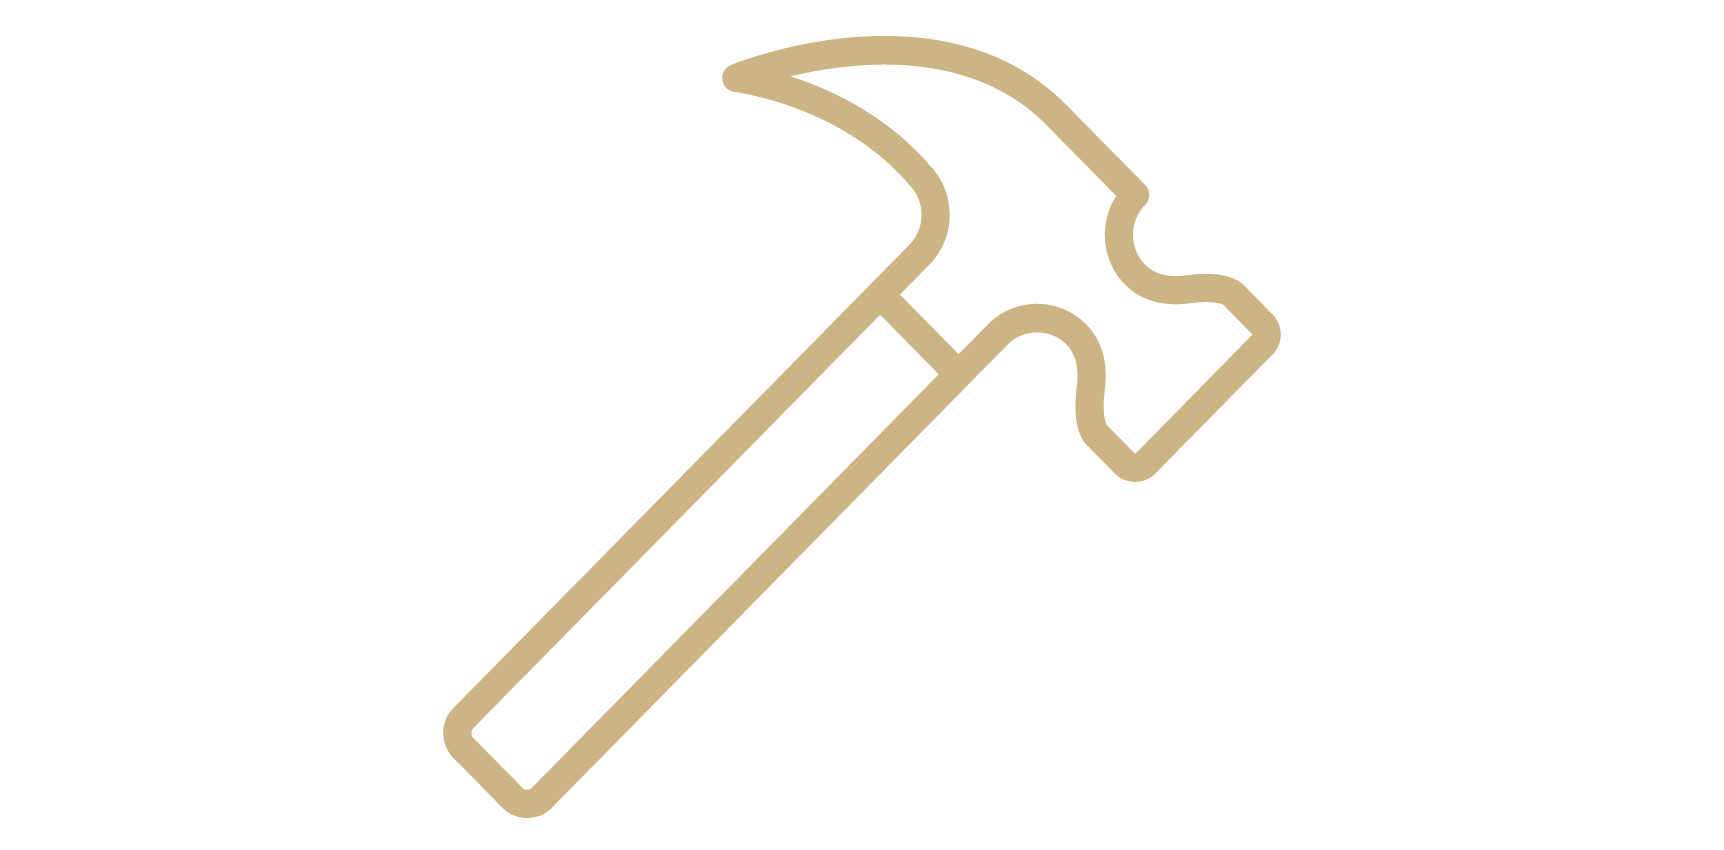 icon-Hammer.png